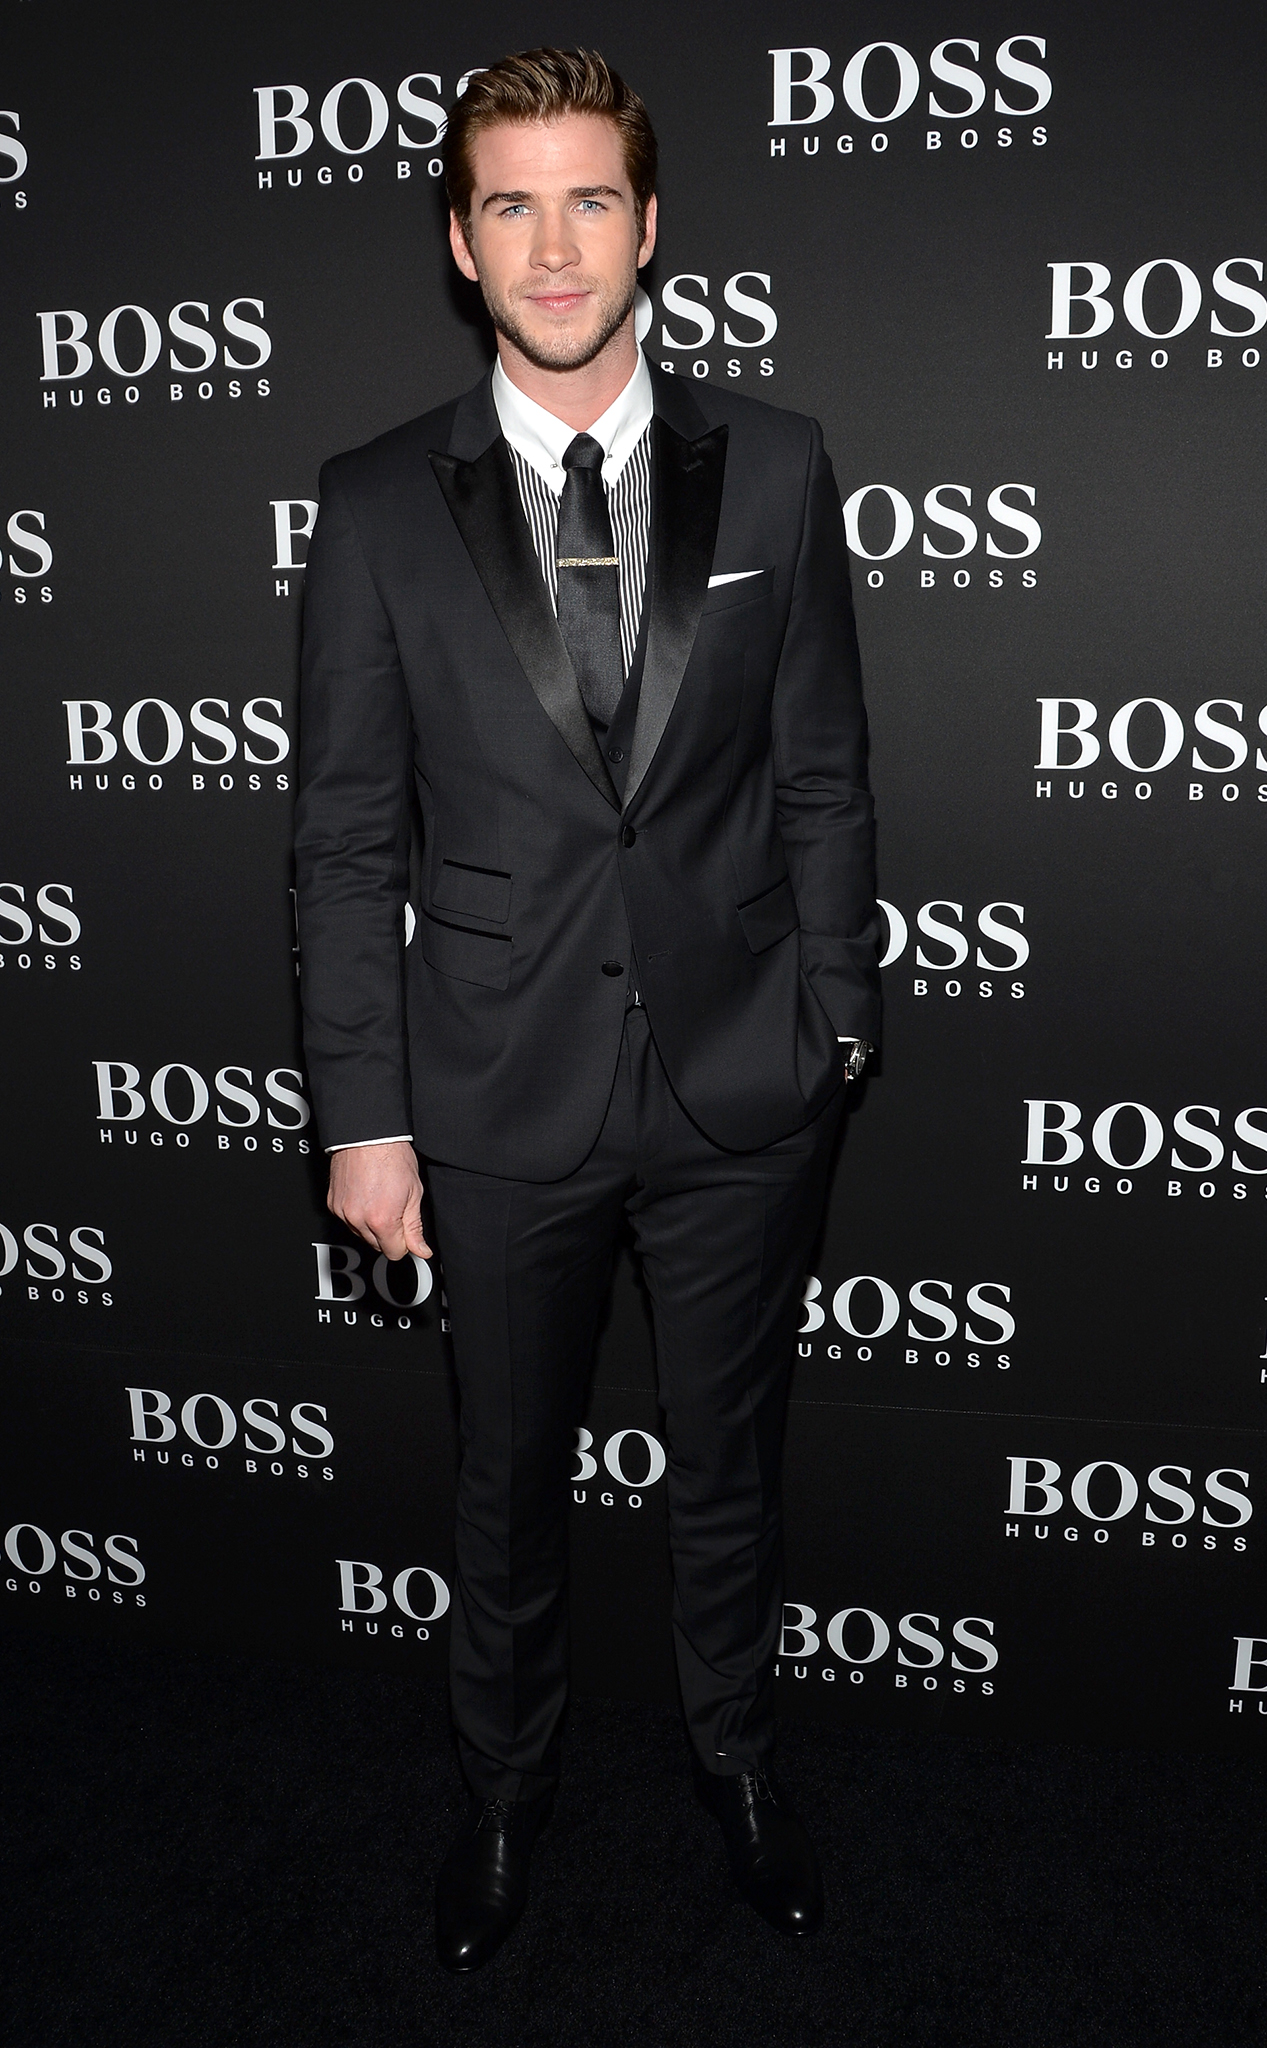 Liam Hemsworth at the Hugo Boss store opening in NYC (Getty Images)